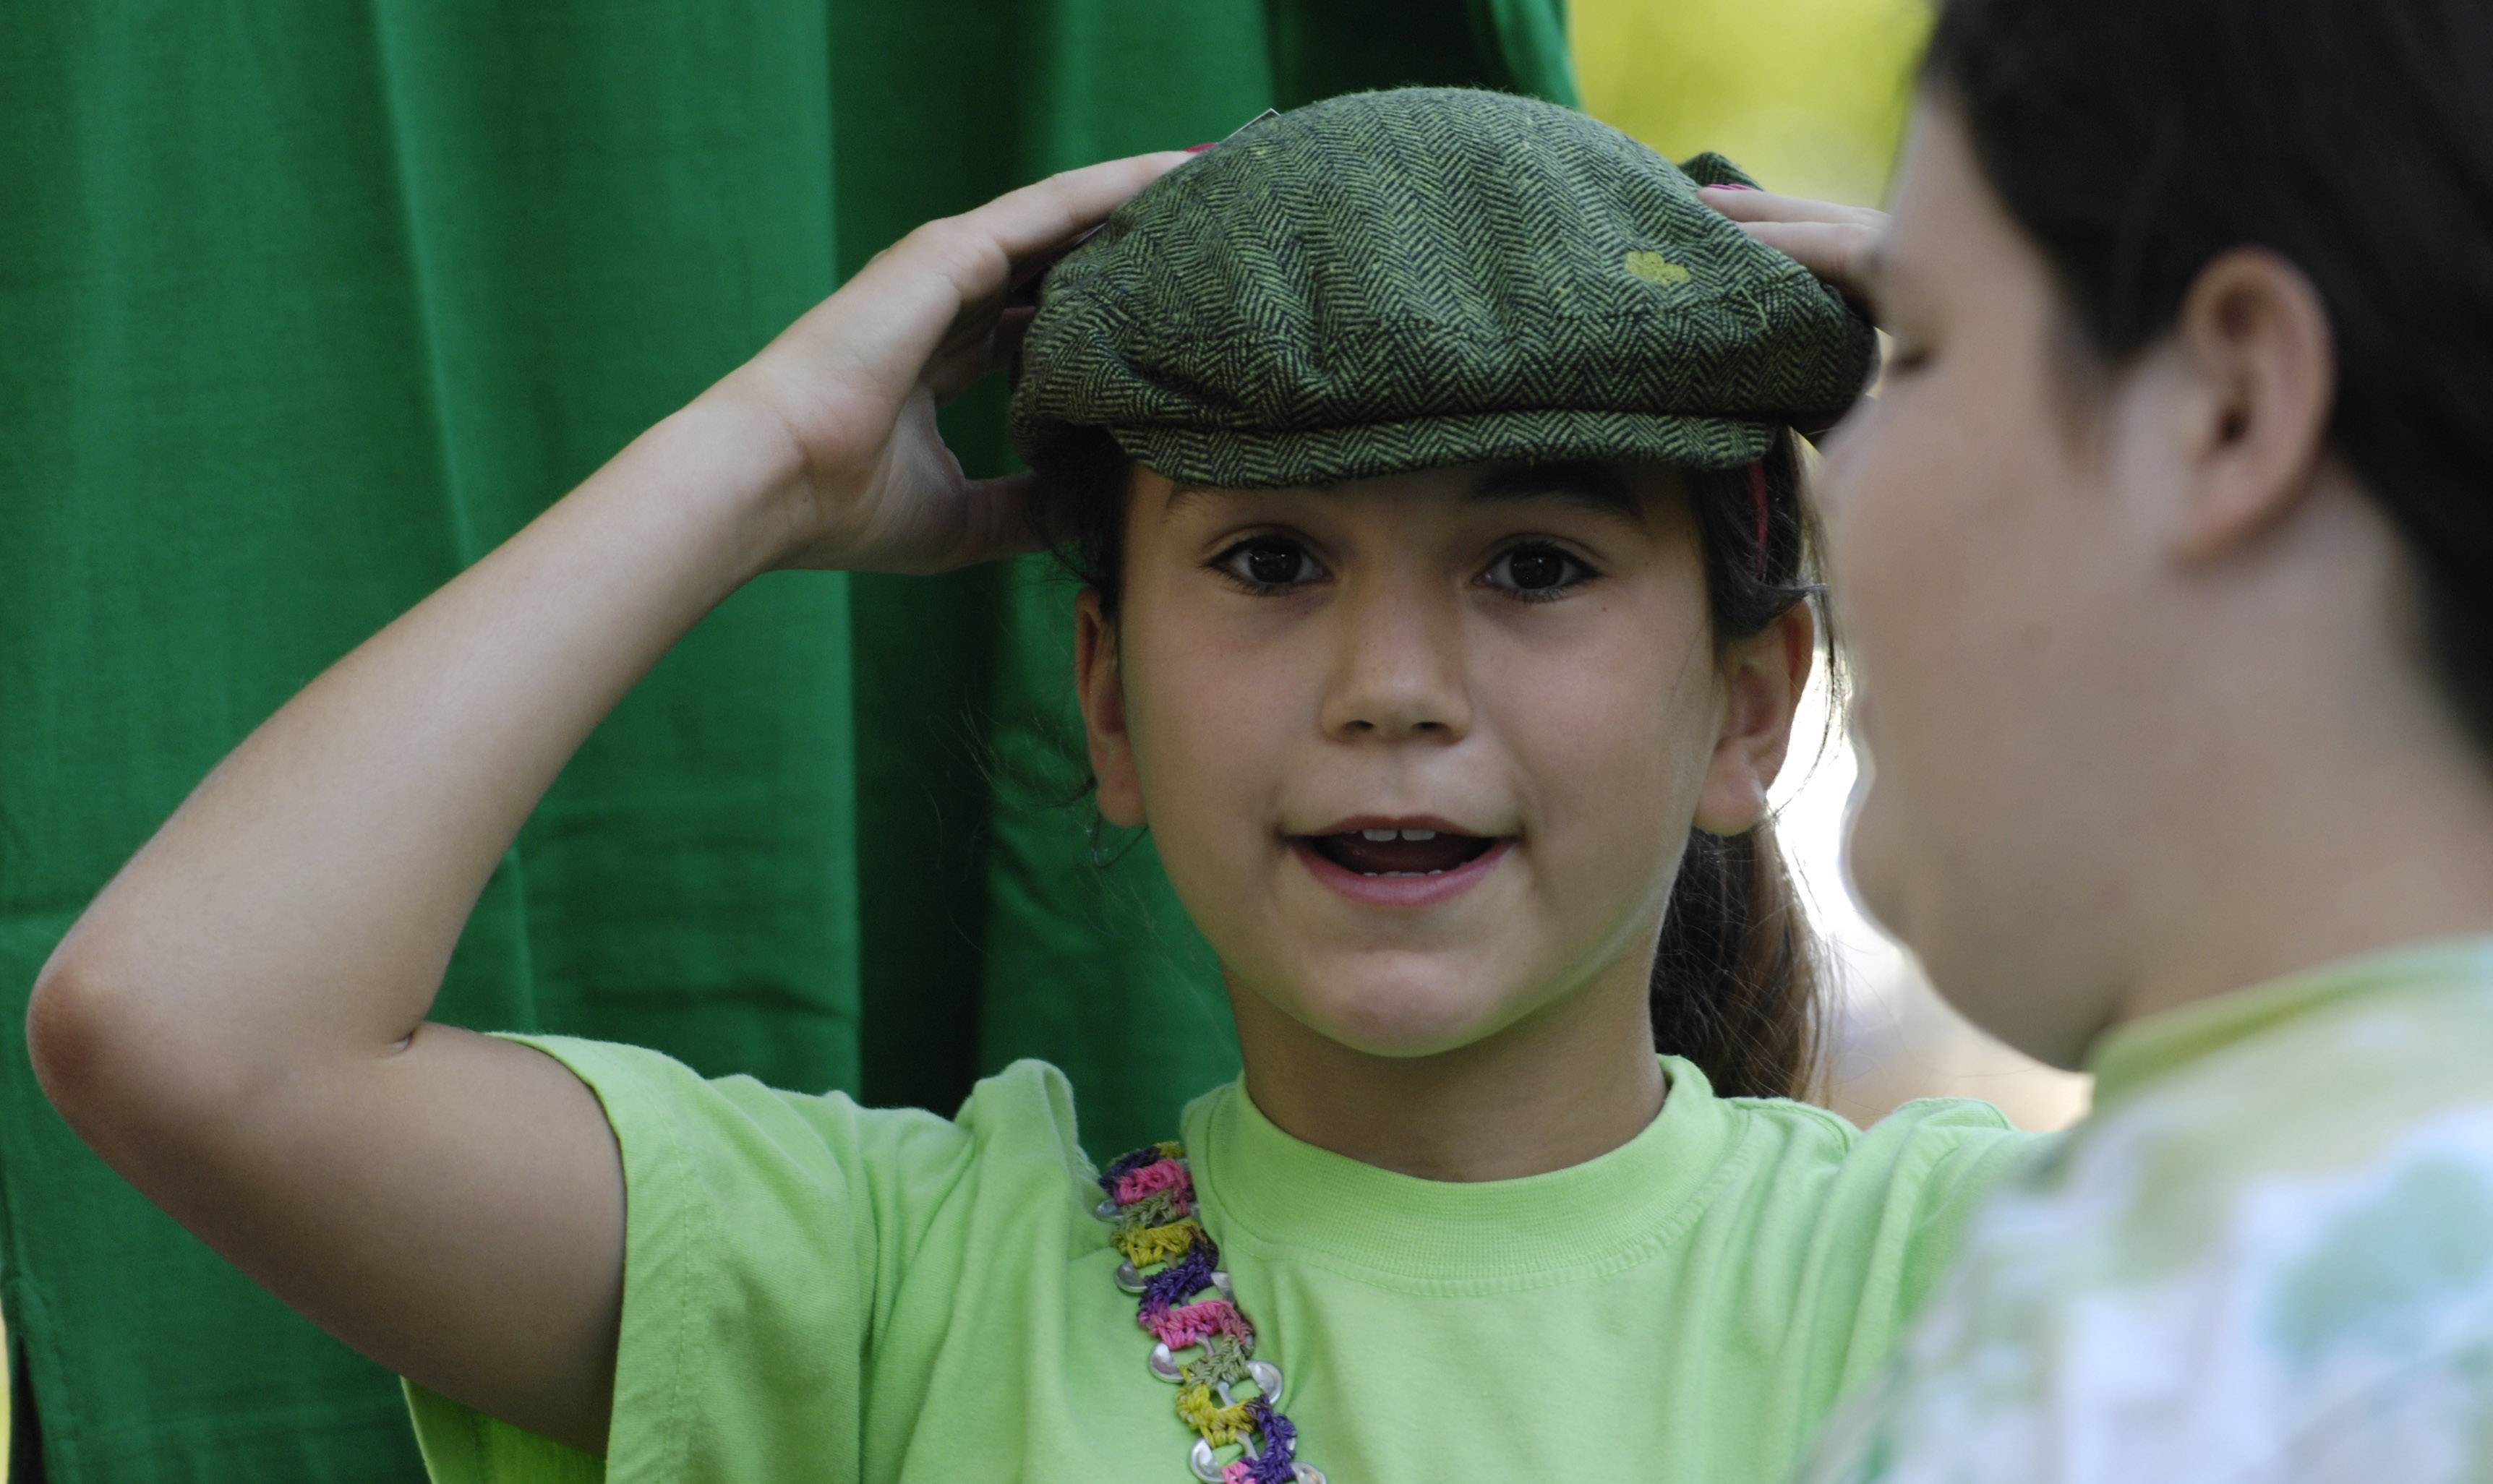 Annie Piet, left, tries on a hat while attending Irish Fest with friend Nary Naughton on Friday in Arlington Heights Friday. Both girls are 11 years old and live in Arlington Heights.